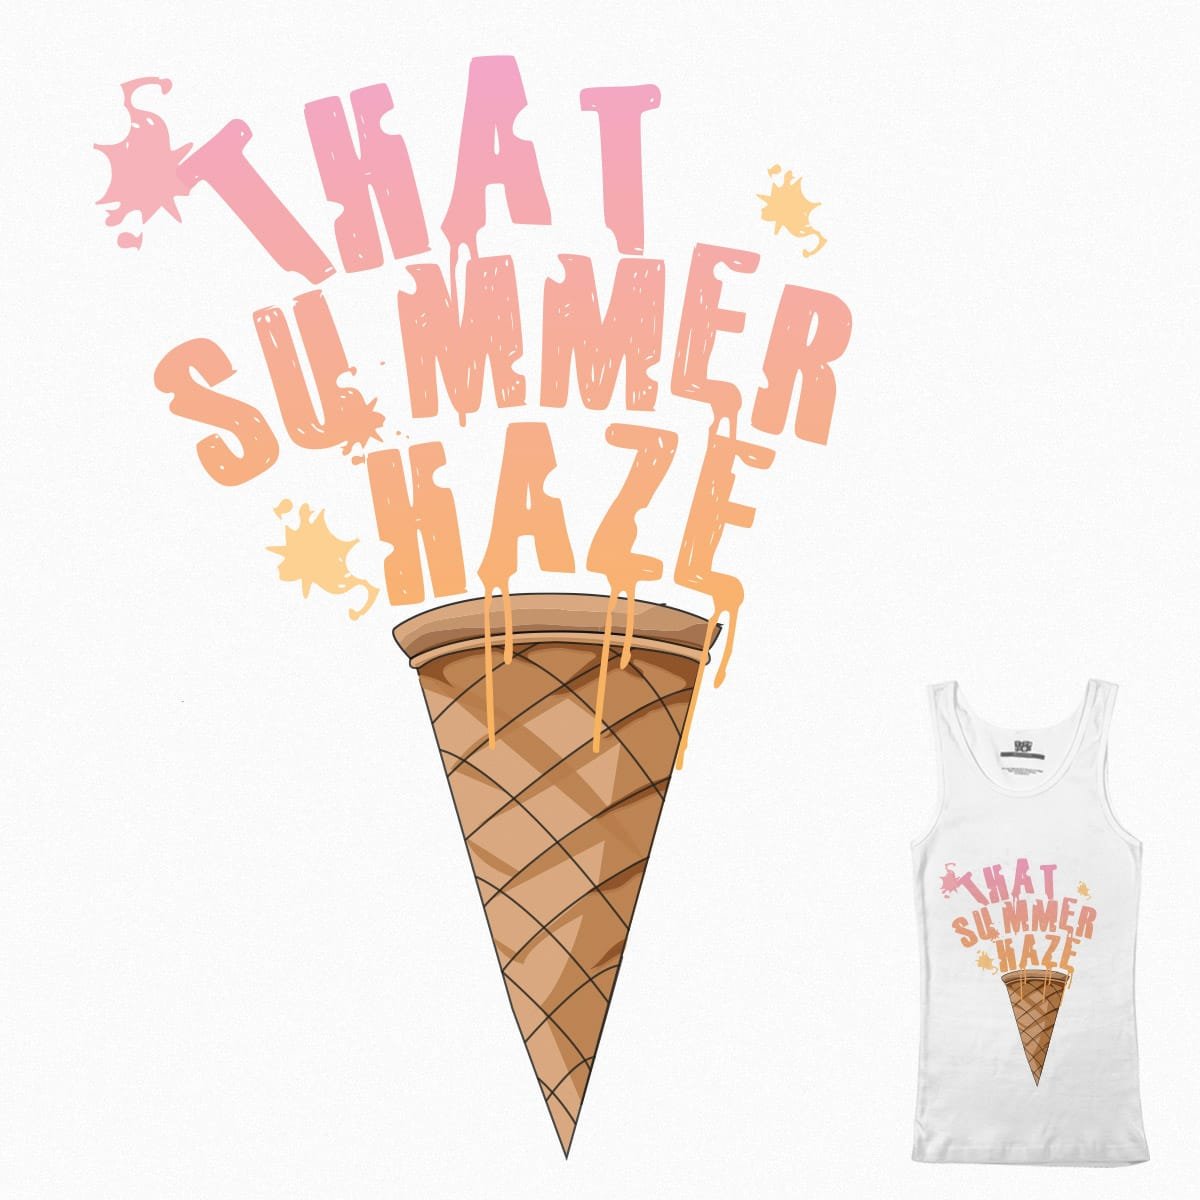 That Summer Haze by lgertzel on Threadless